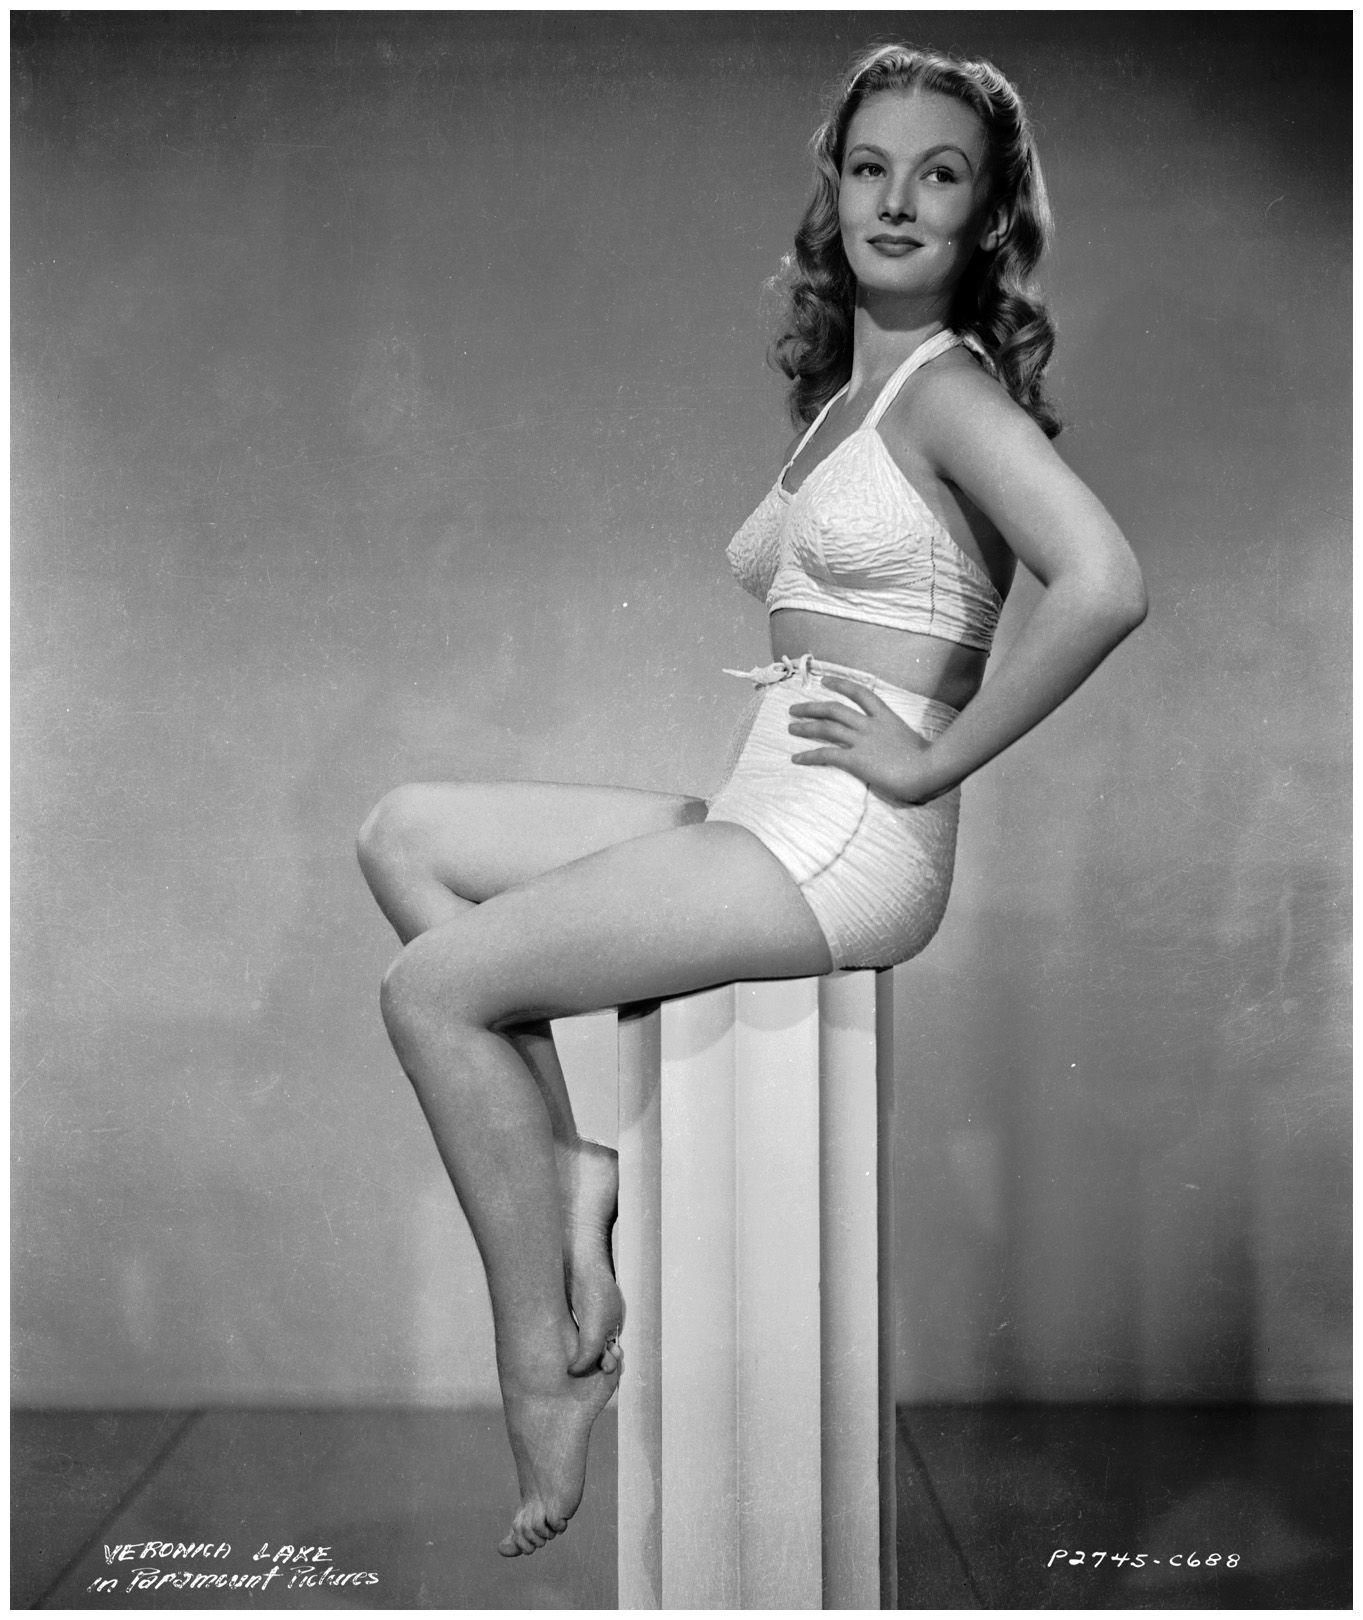 Veronica Lake in a swimsuit